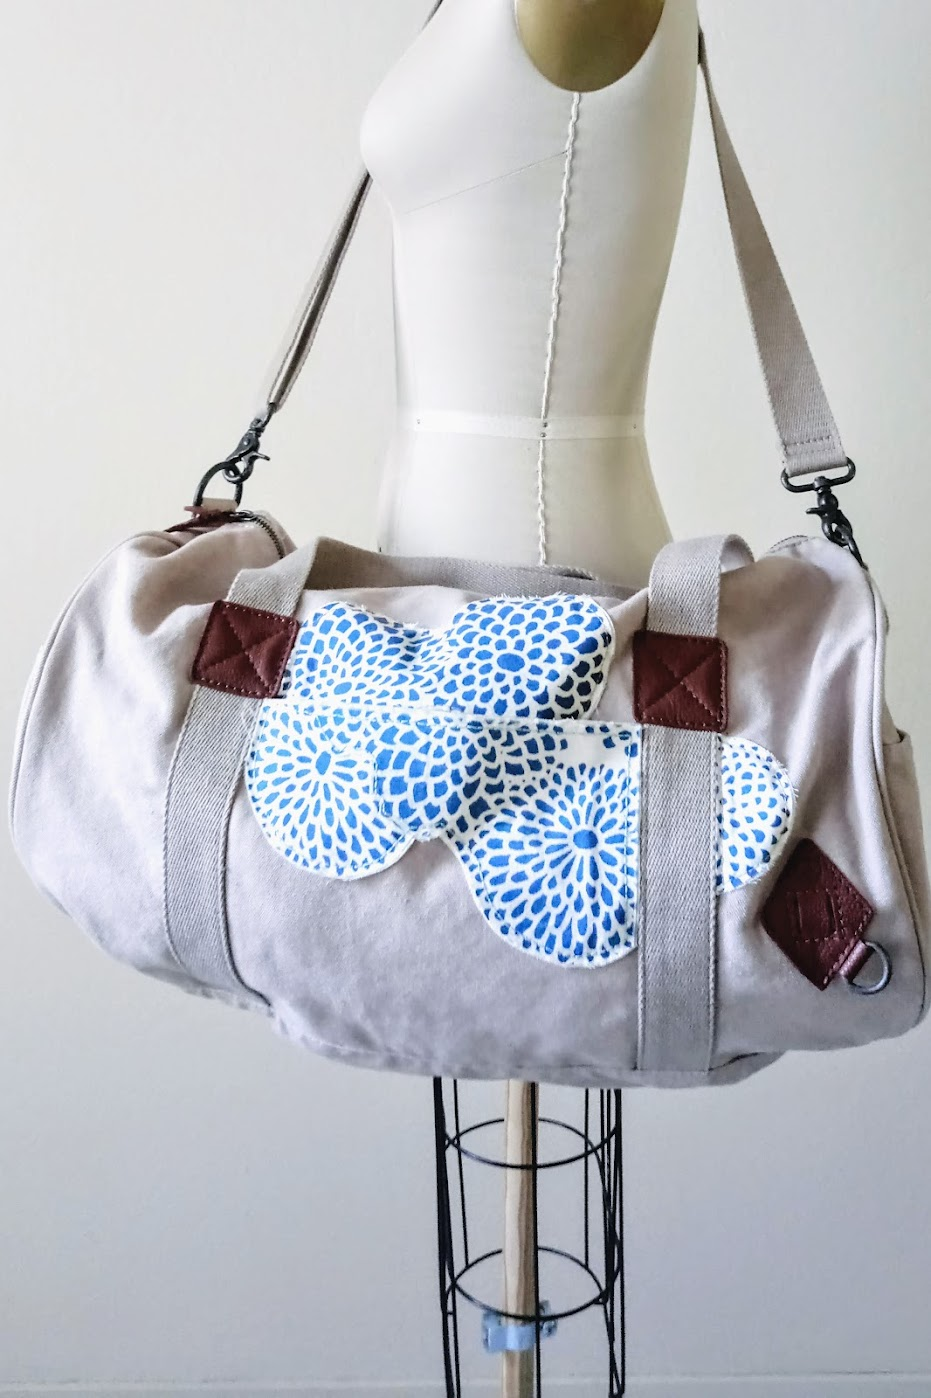 Appliqué Duffle Bag Project - DIY Fashion Accessories | fafafoom.com